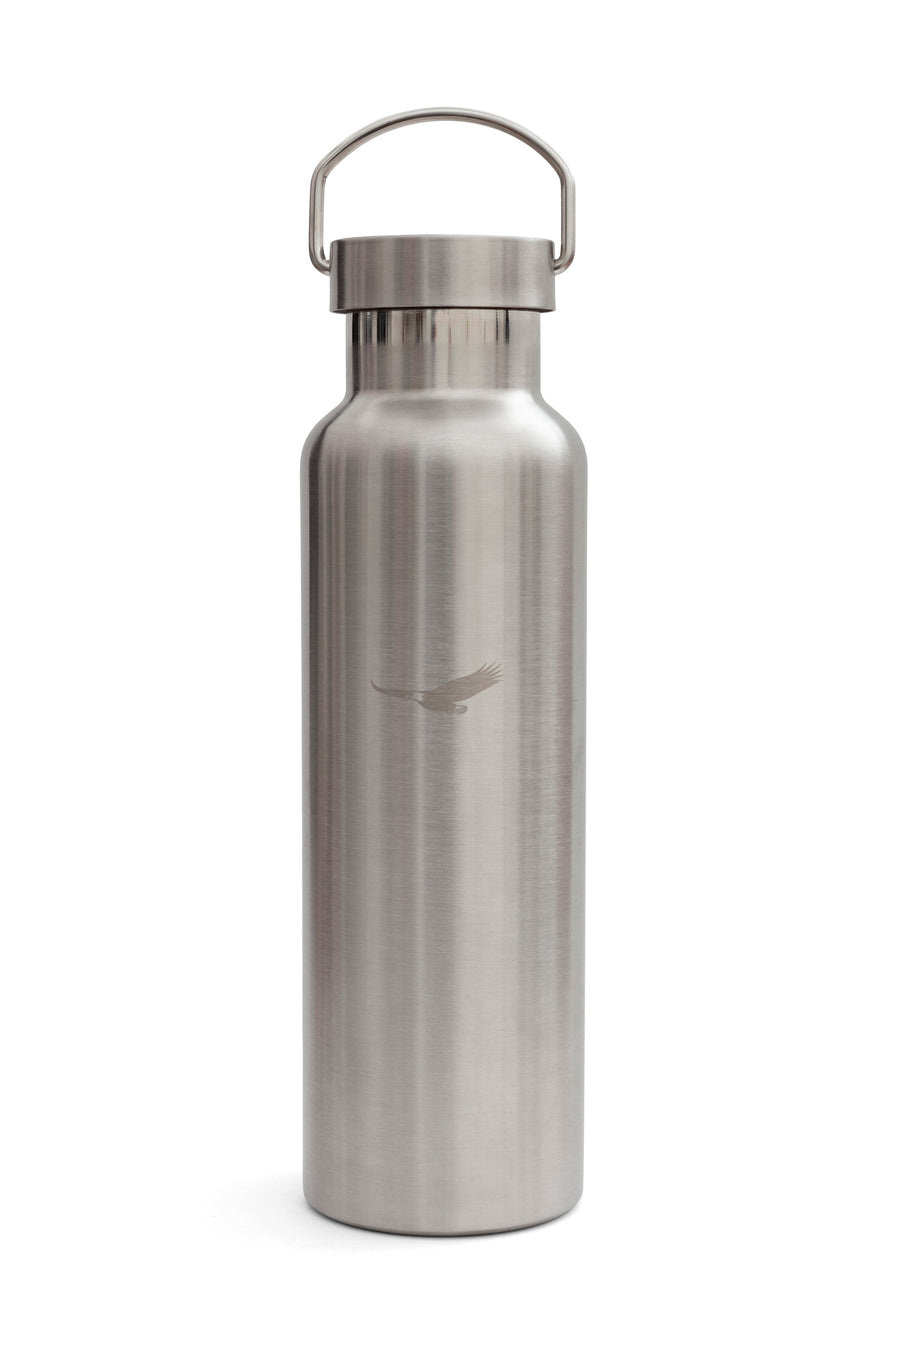 HGDG THERMO BOTTLE